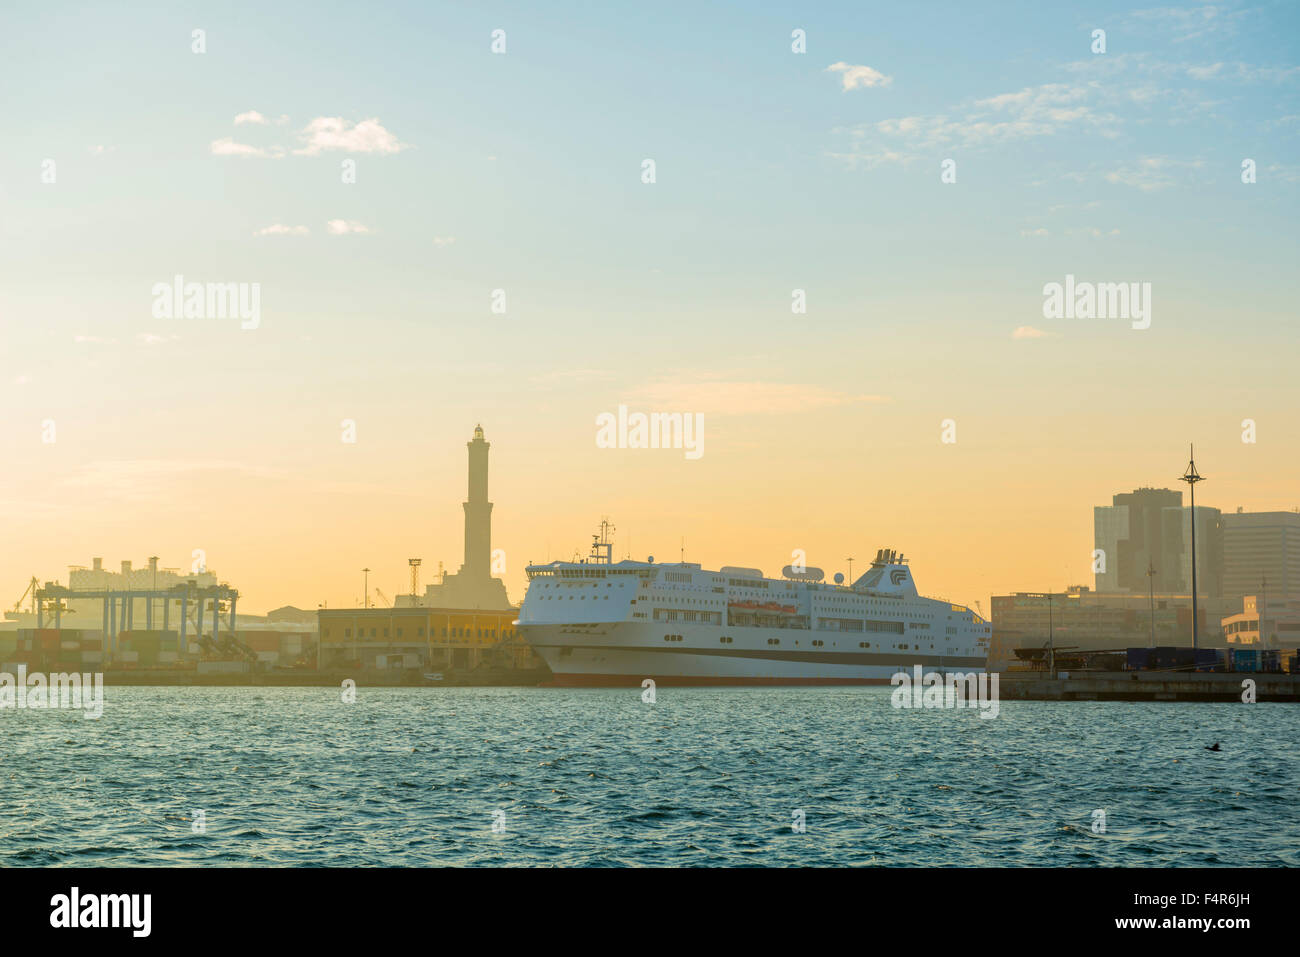 Port with passenger ship and lighthouse in sunset in Genoa, Italy. - Stock Image